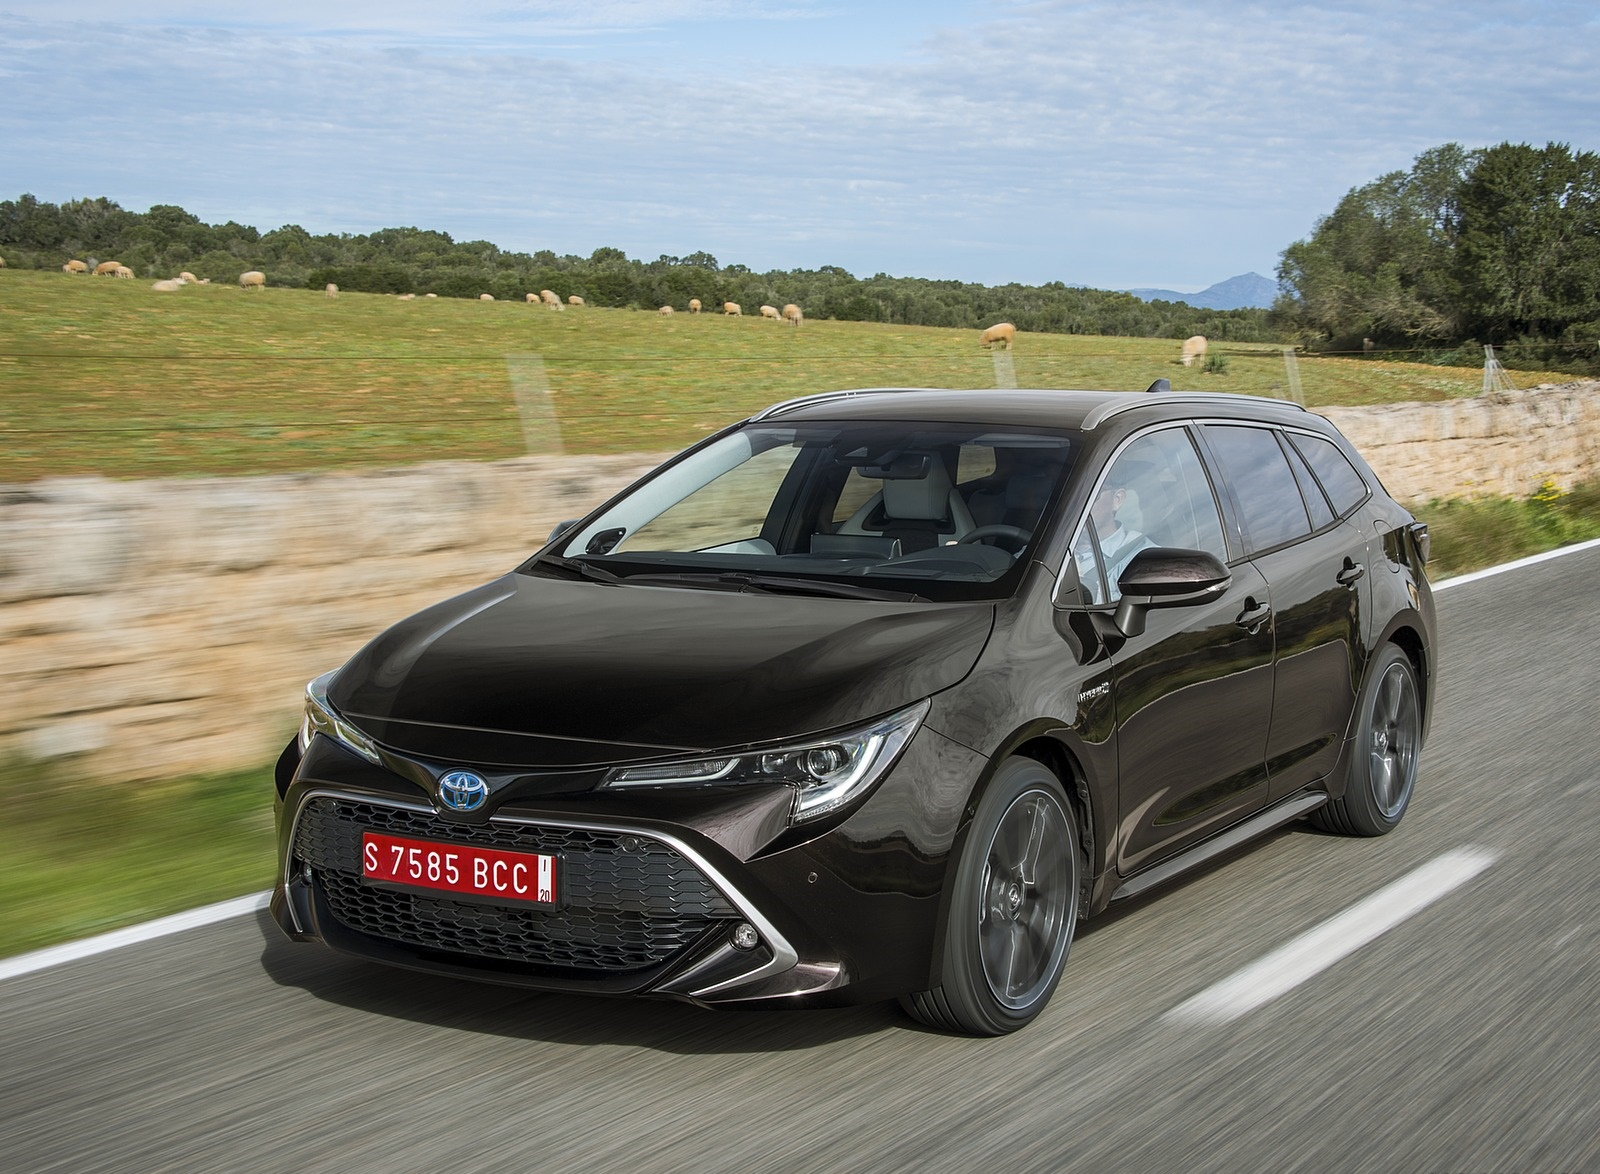 2019 Toyota Corolla Touring Sports 2.0L Brown (EU-Spec) Front Three-Quarter Wallpapers (13)